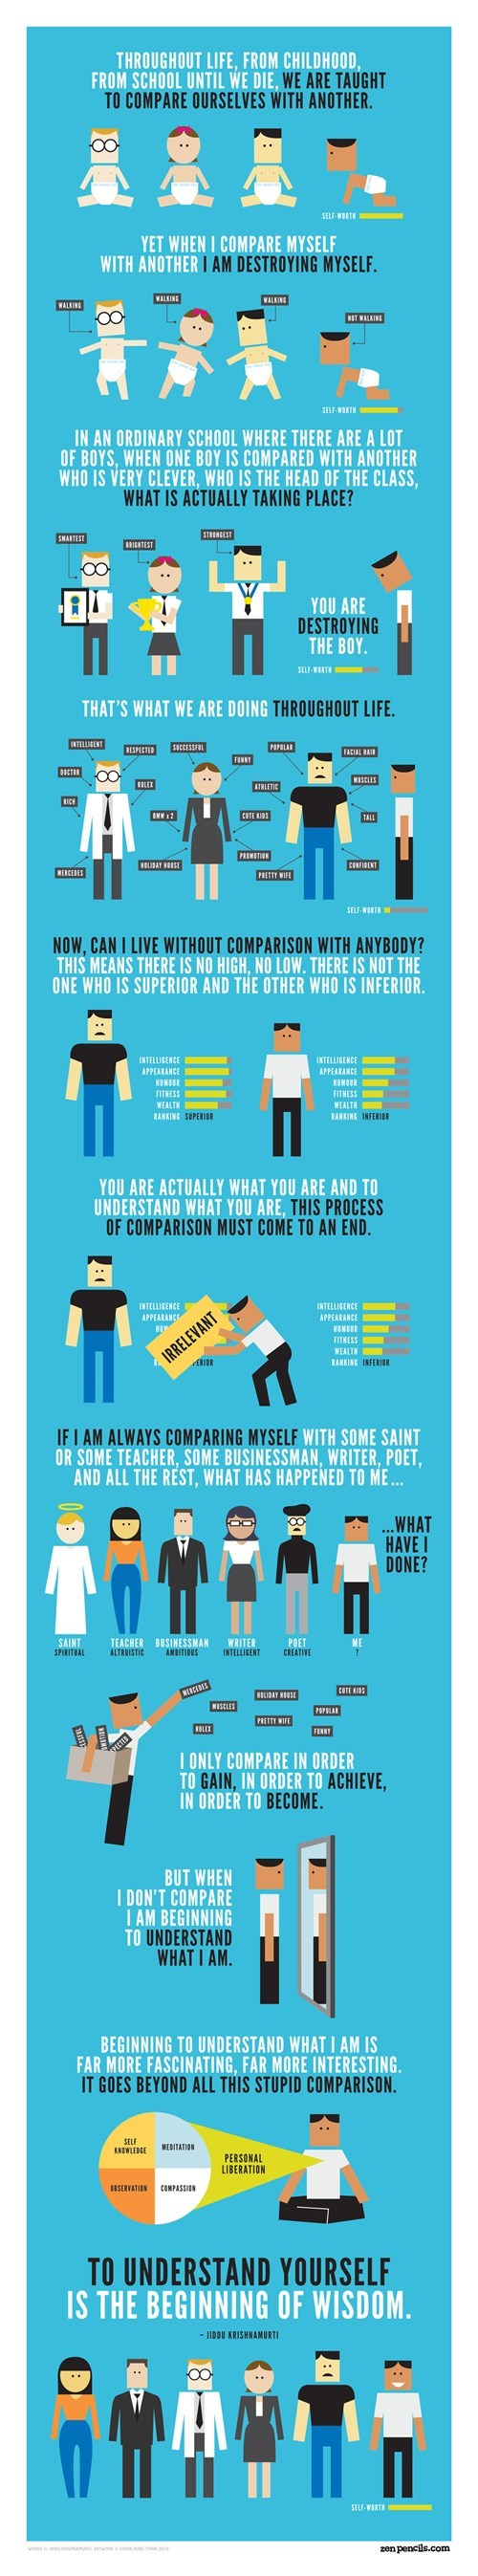 comparison infographic zen pencils - 7979394560